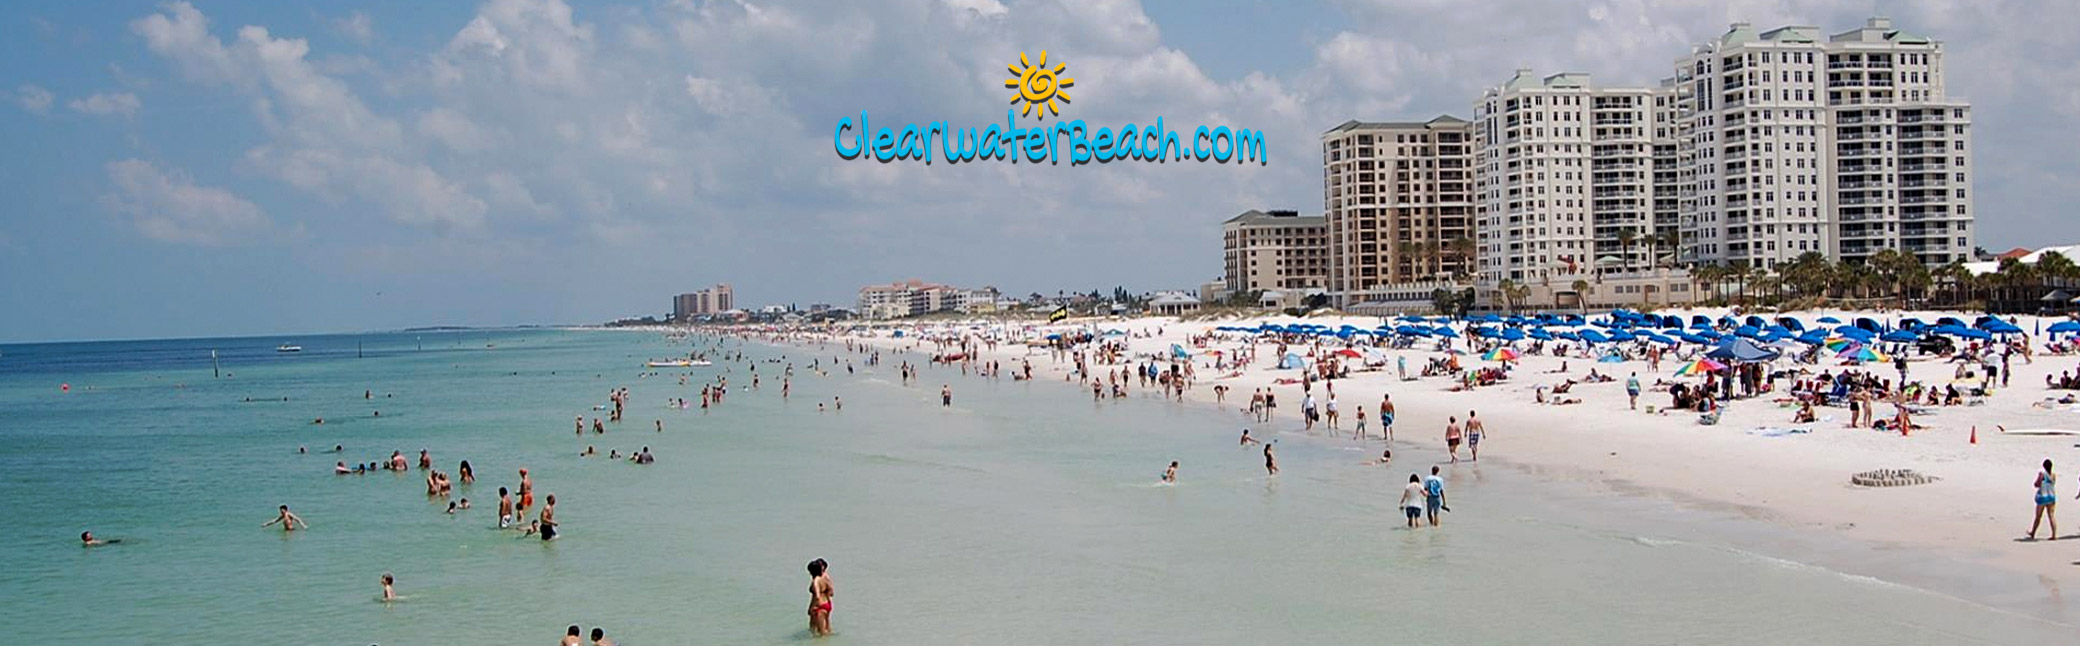 Map Of Florida Clearwater.Your Concierge For Clearwater Beach Florida Clearwater Beach Com